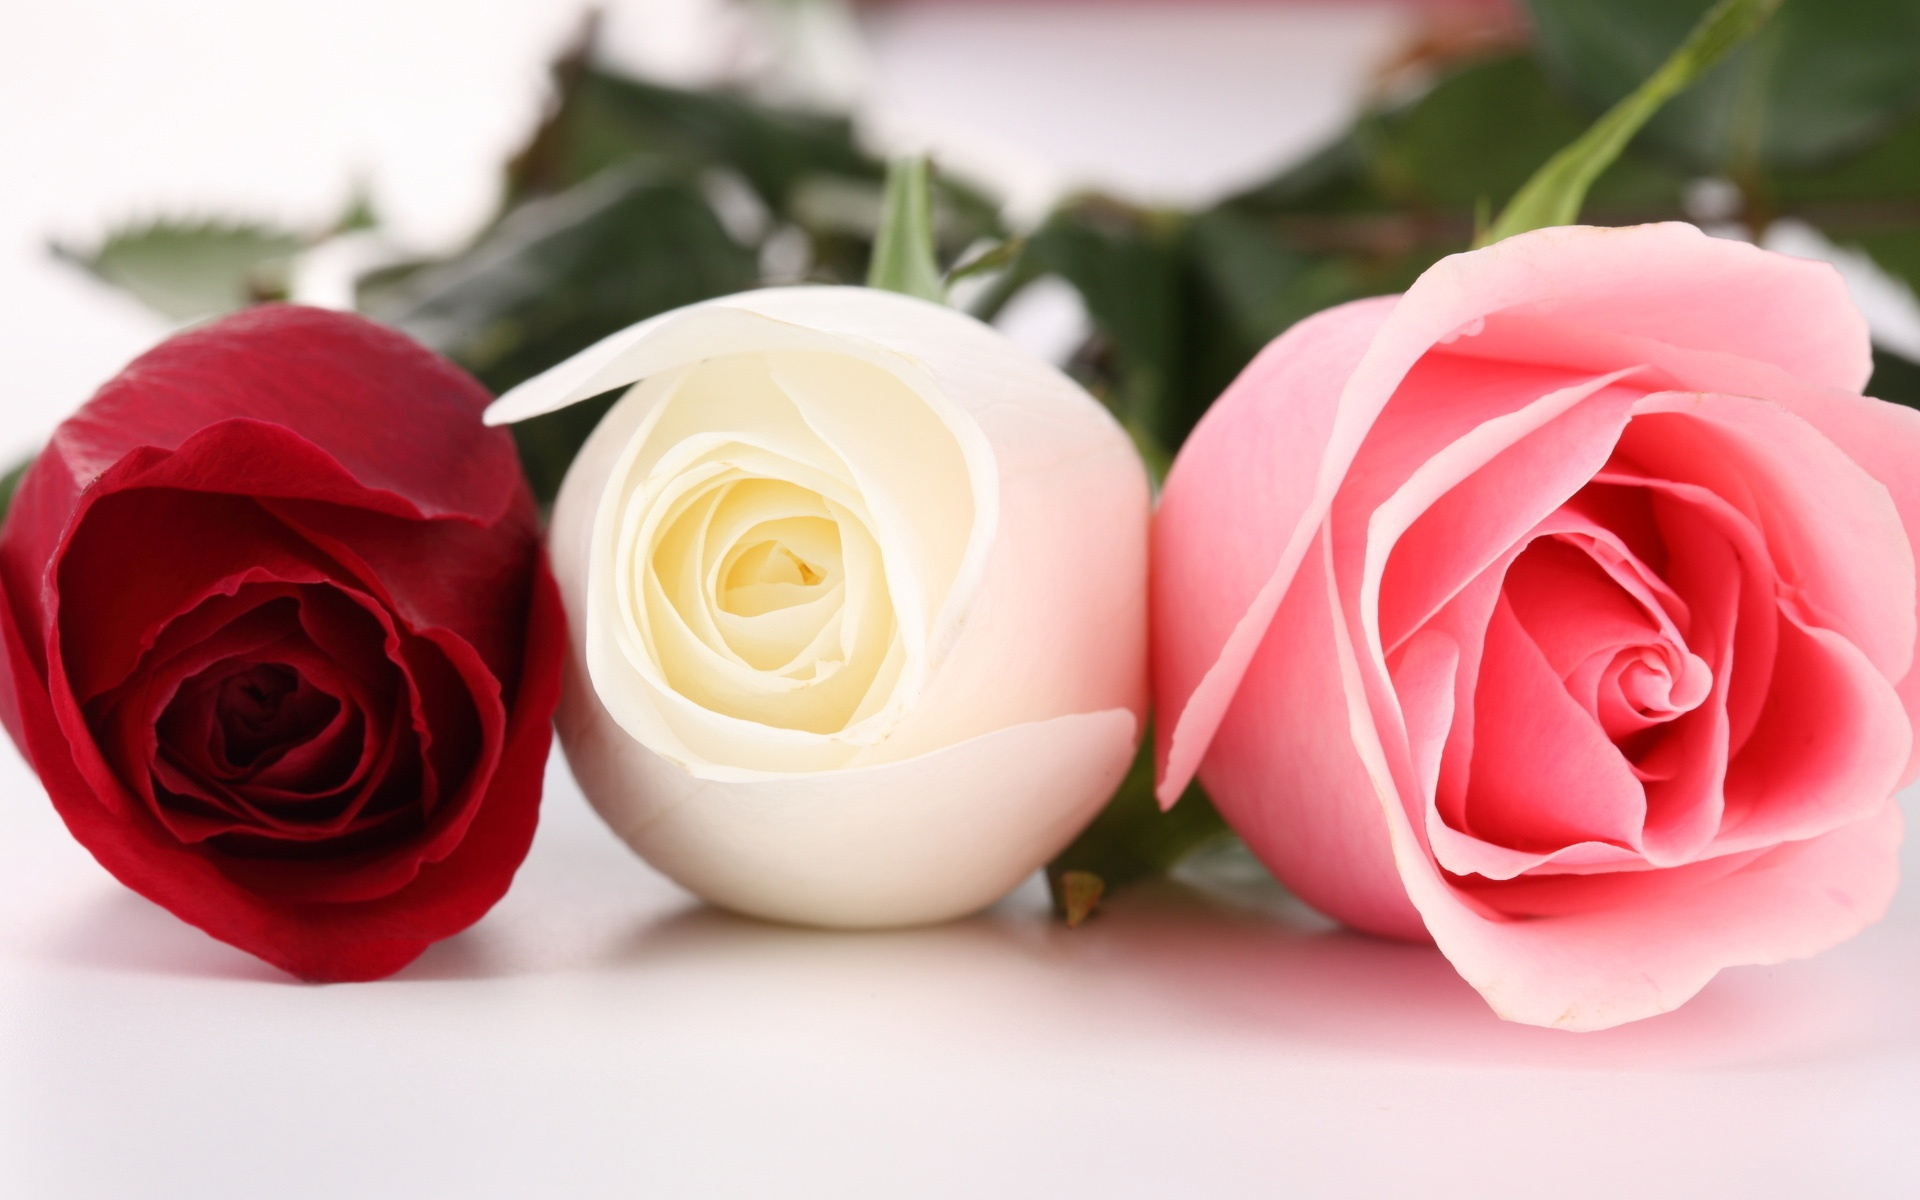 Download wallpaper 1920x1200 three different colors of for What colors make rose